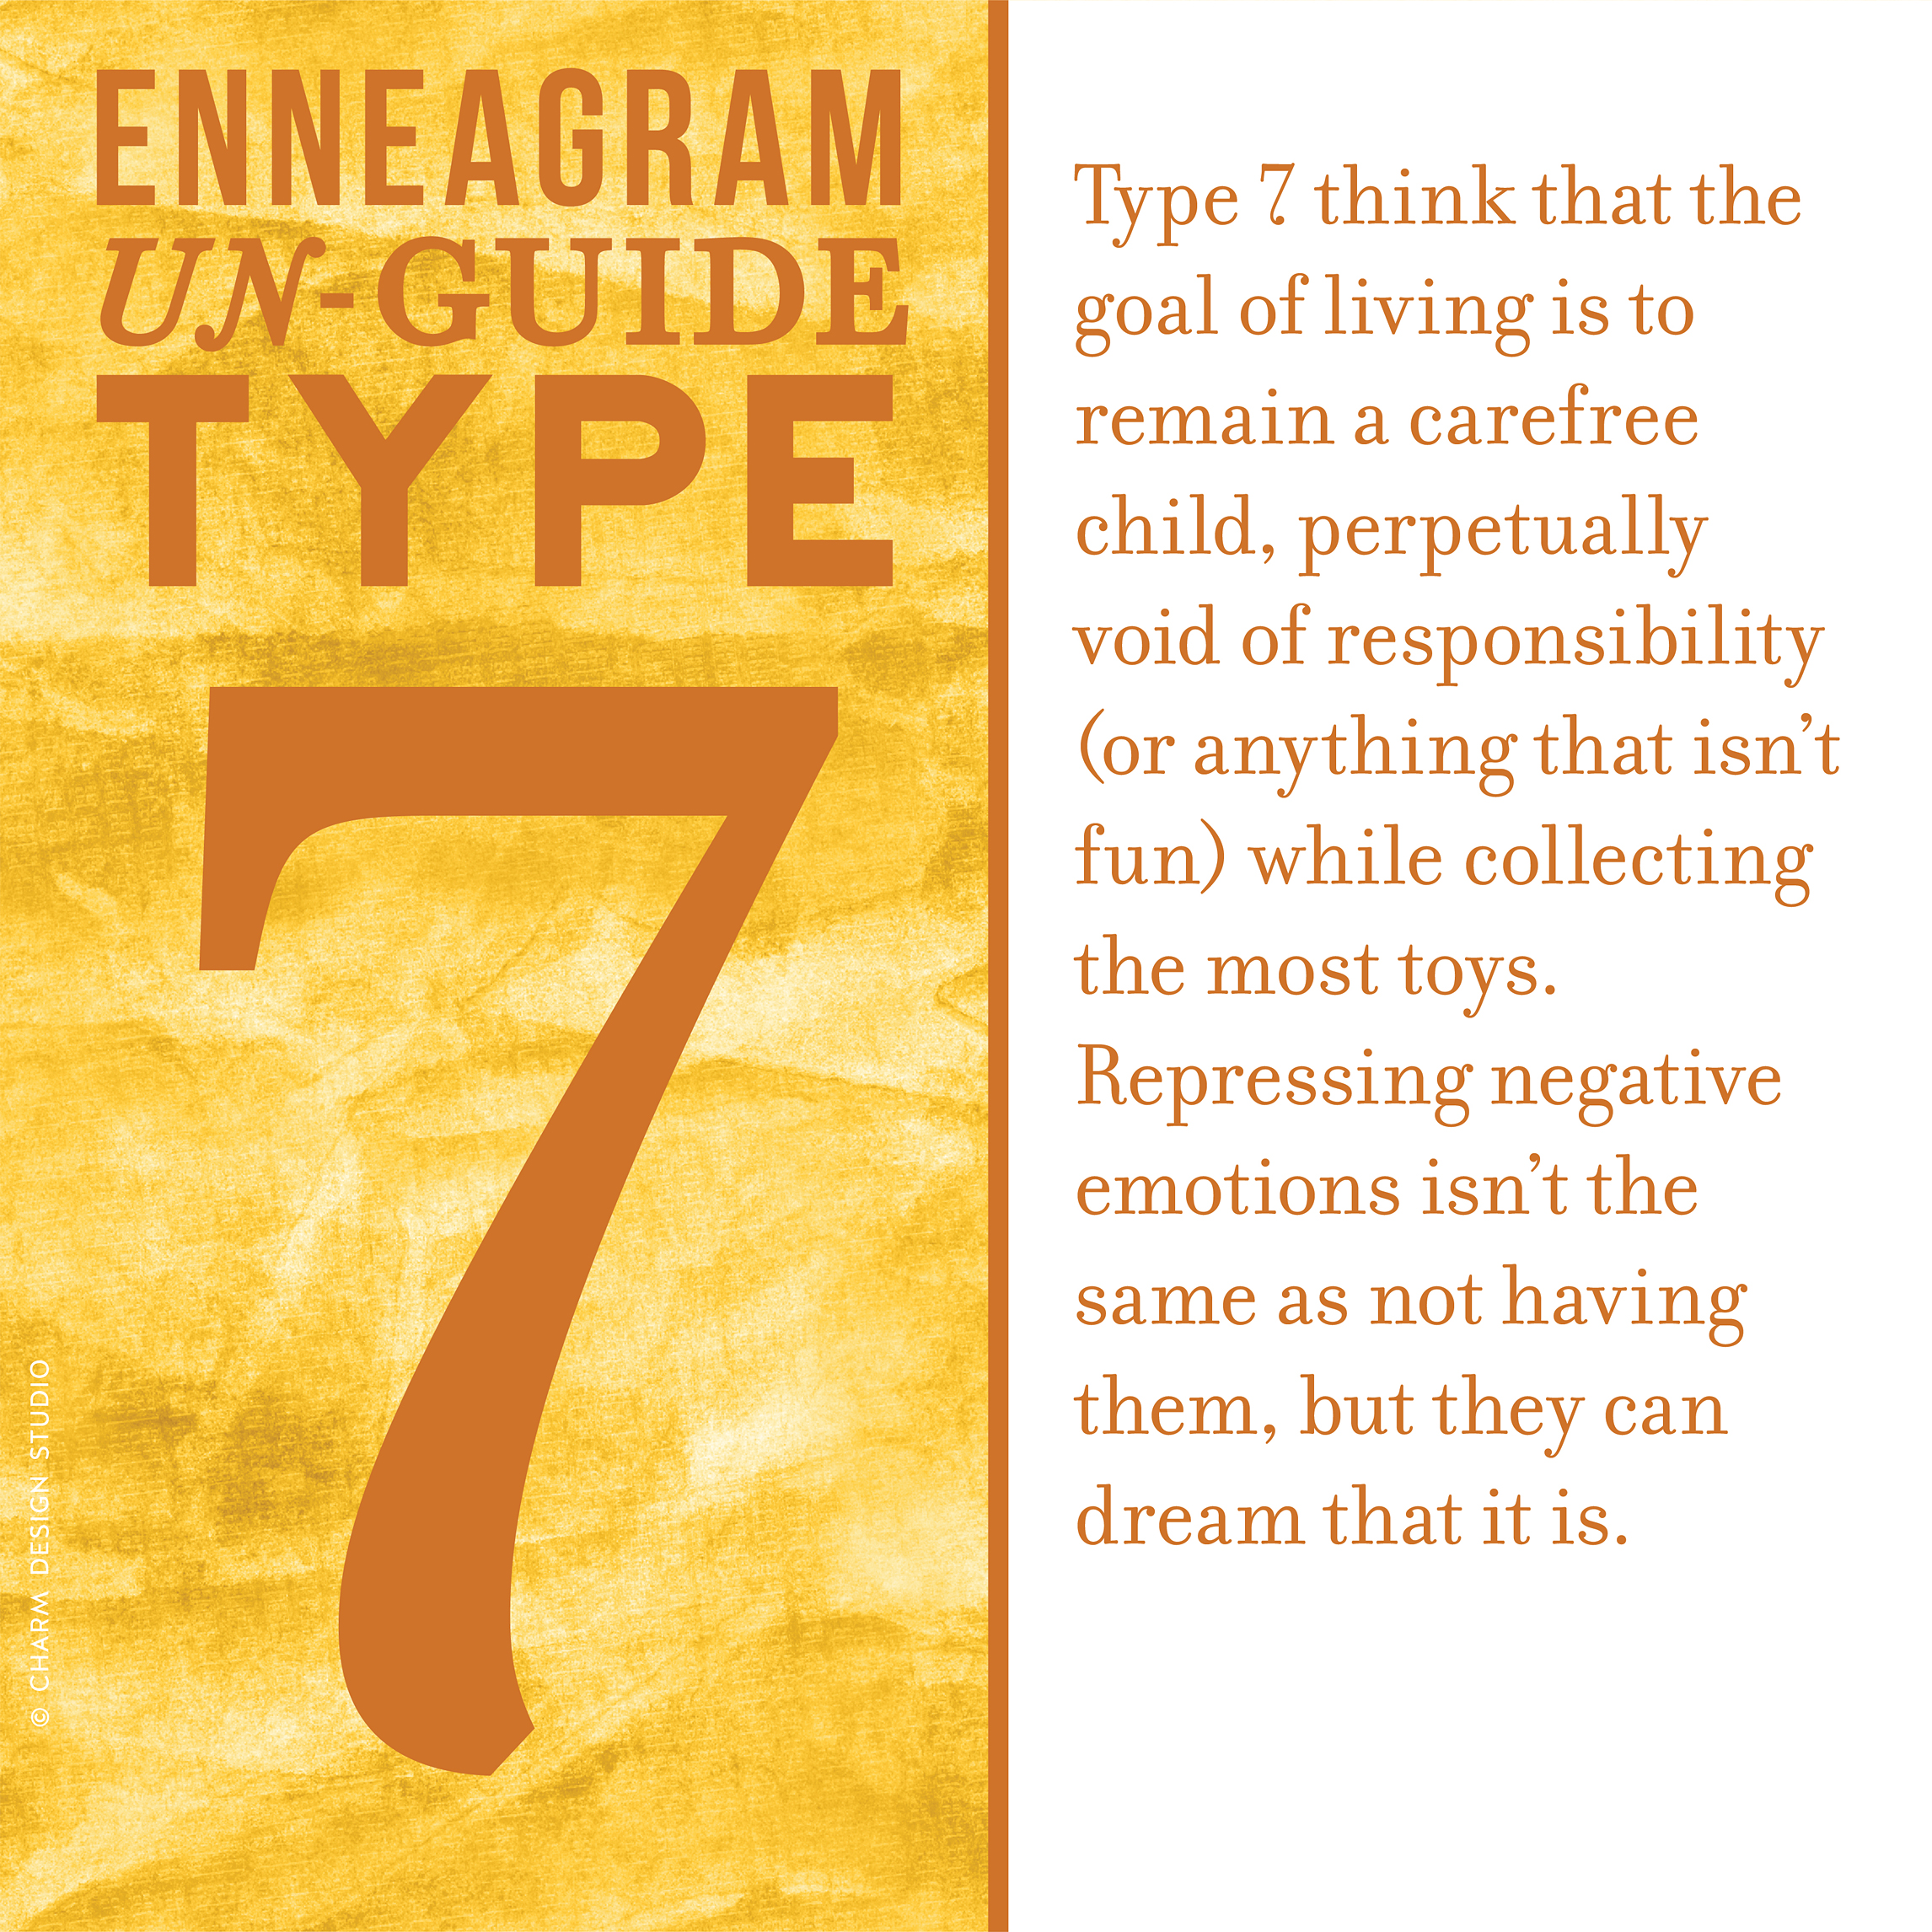 Enneagram Un-Guide: Type 7 think that the goal of living is to remain a carefree child, perpetually void of responsibility (or anything that isn't fun) while collecting the most toys. Repressing negative emotions isn't the same as not having them, but they can dream that it is. / Design and words © Charm Design Studio